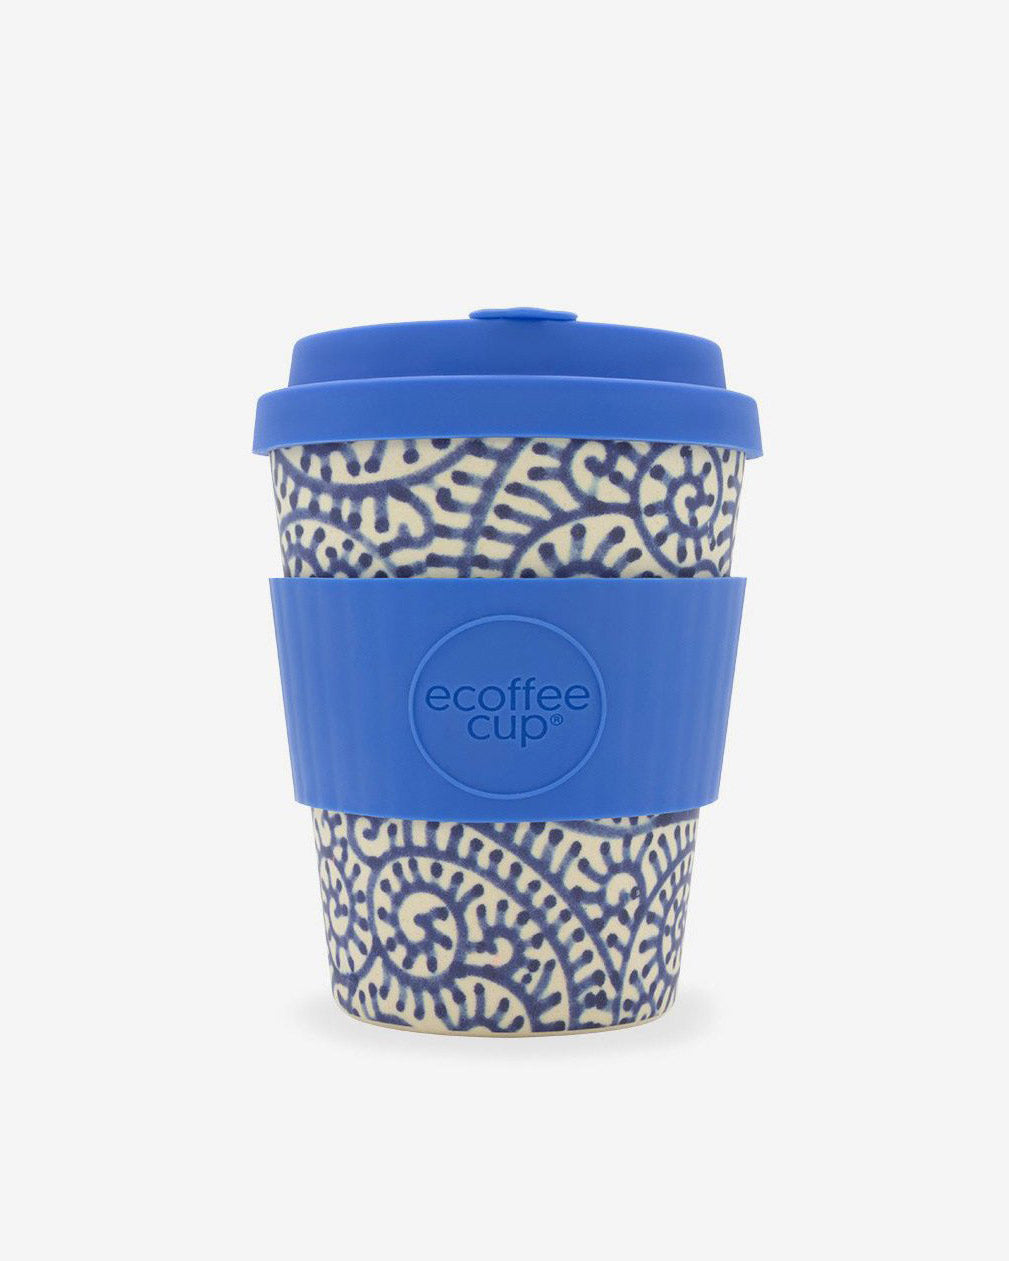 SurfGirl Beach Boutique Eco Bamboo Travel  Coffee Cup 'Setsuko' Blue Pattern Travel Mug